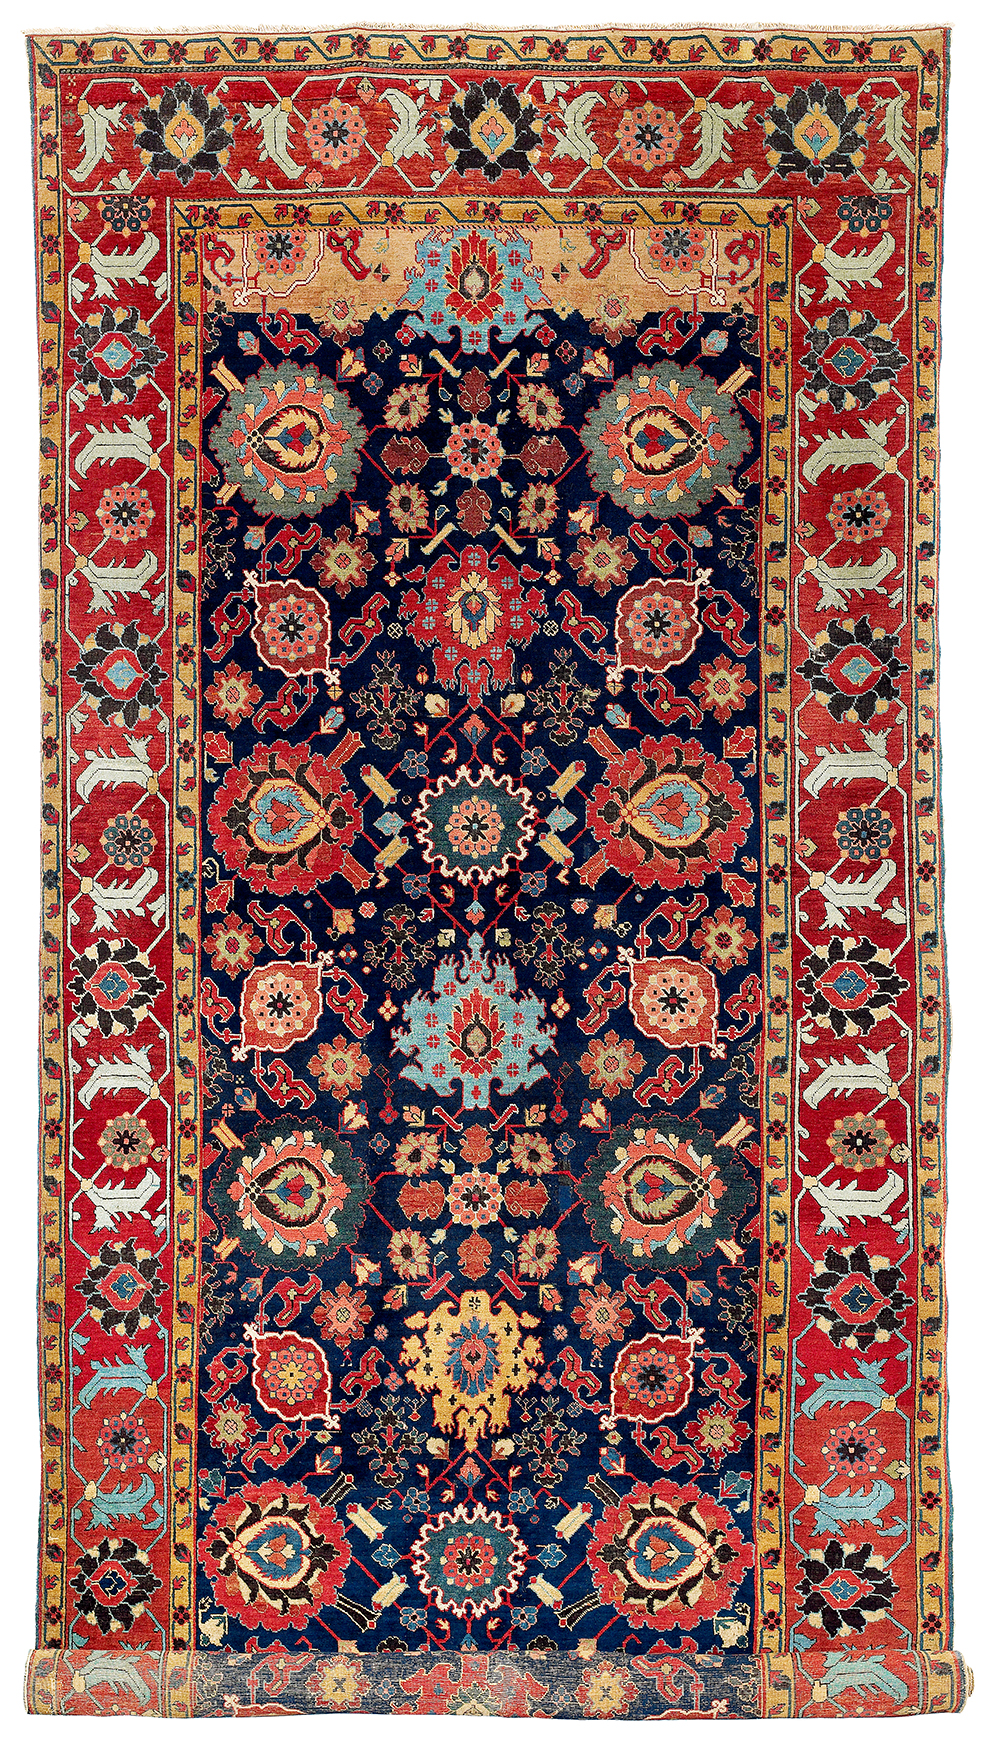 Lot 144, Northwest Persian kelleh, Azerbaijan, 18th century, estimate €70,000